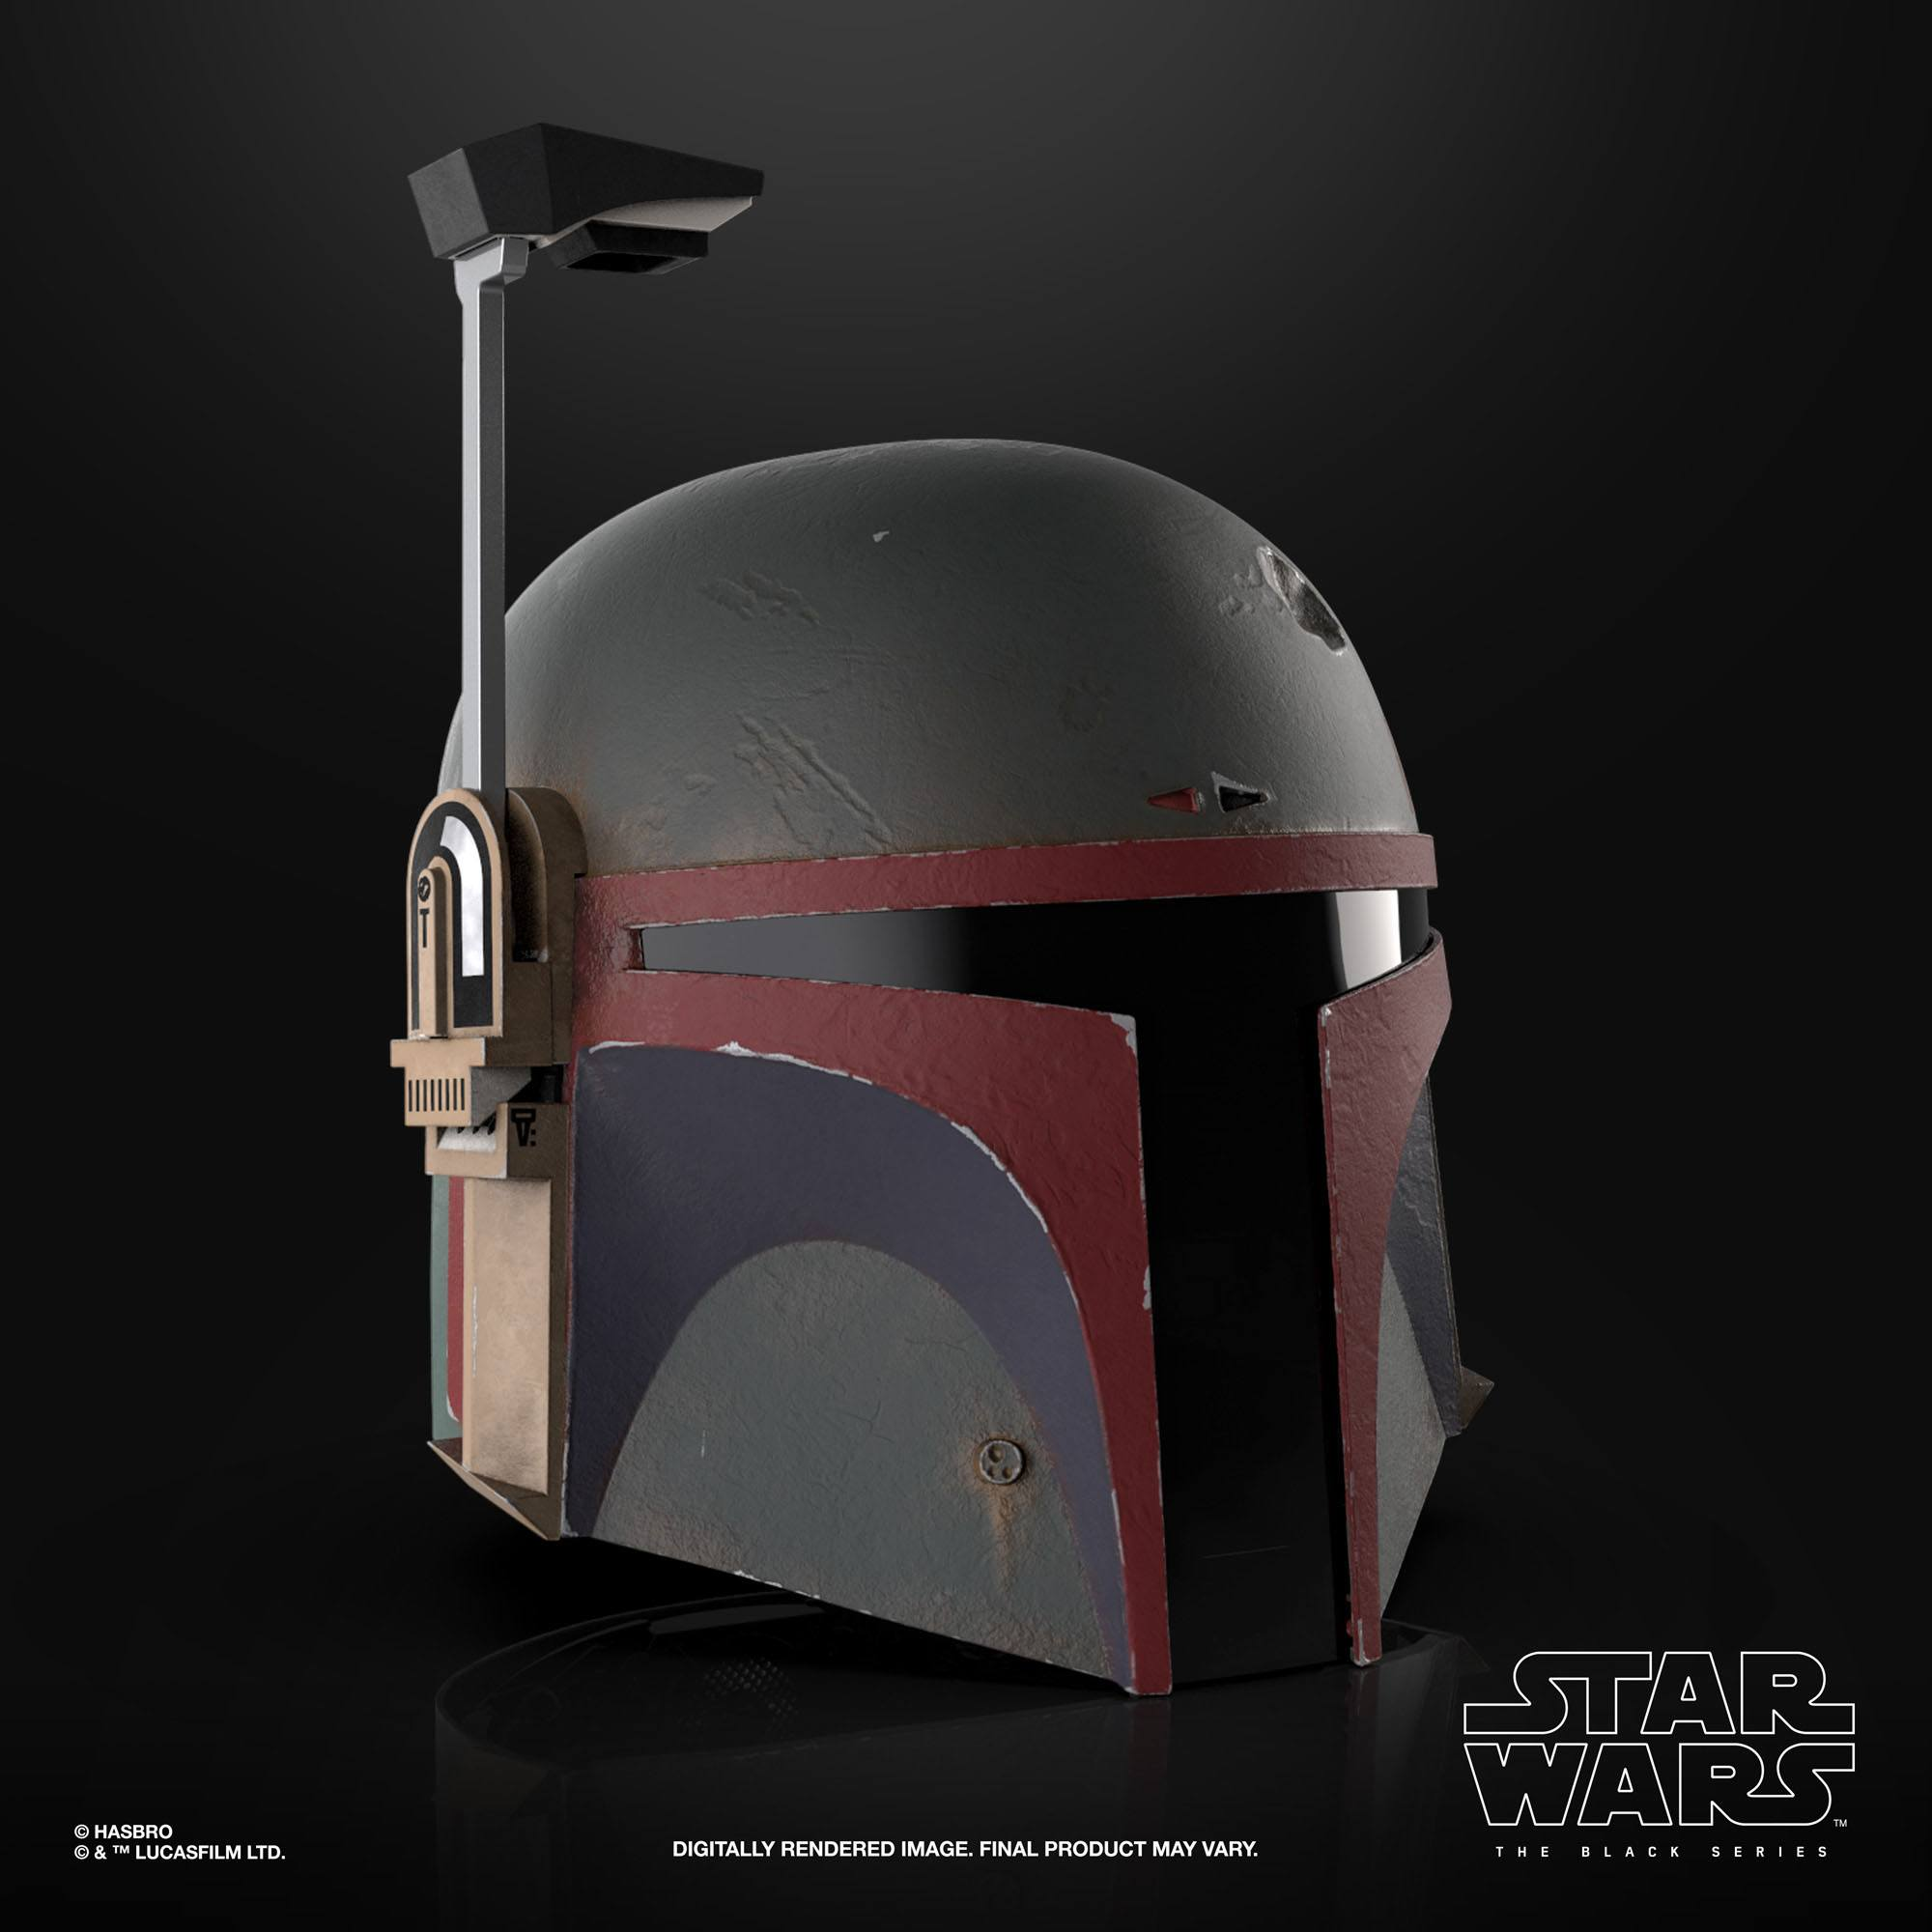 Star Wars The Mandalorian Black Series Elektronischer Helm Boba Fett (Re-Armored) F52815L0 5010993927685